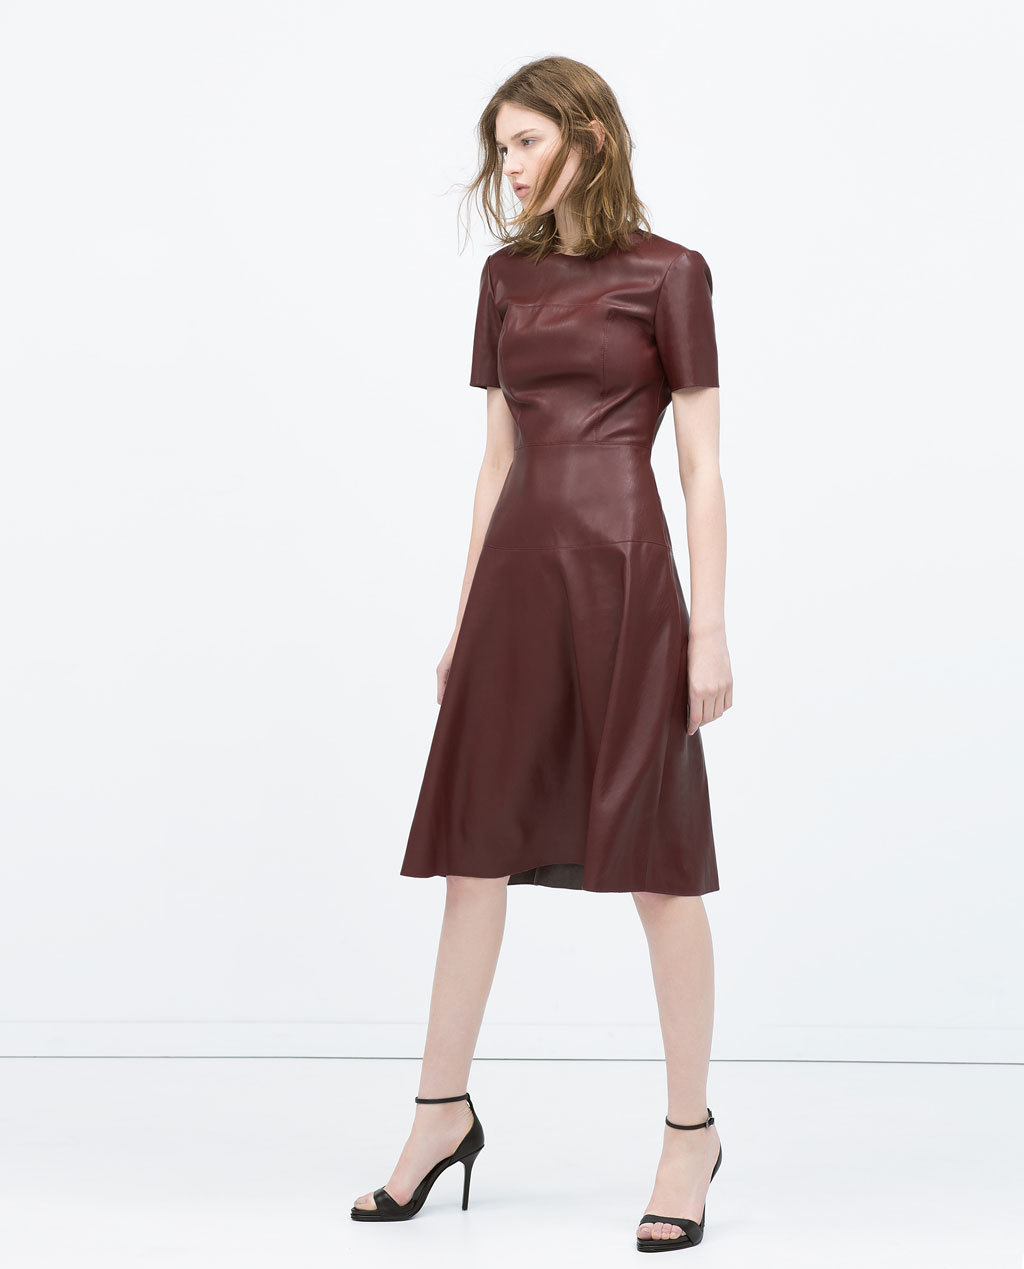 Leather Effect Layered Skirt Dress - length: below the knee; pattern: plain; predominant colour: burgundy; occasions: evening, creative work; fit: fitted at waist & bust; style: fit & flare; fibres: leather - 100%; neckline: crew; sleeve length: short sleeve; sleeve style: standard; texture group: leather; pattern type: fabric; season: s/s 2015; wardrobe: highlight